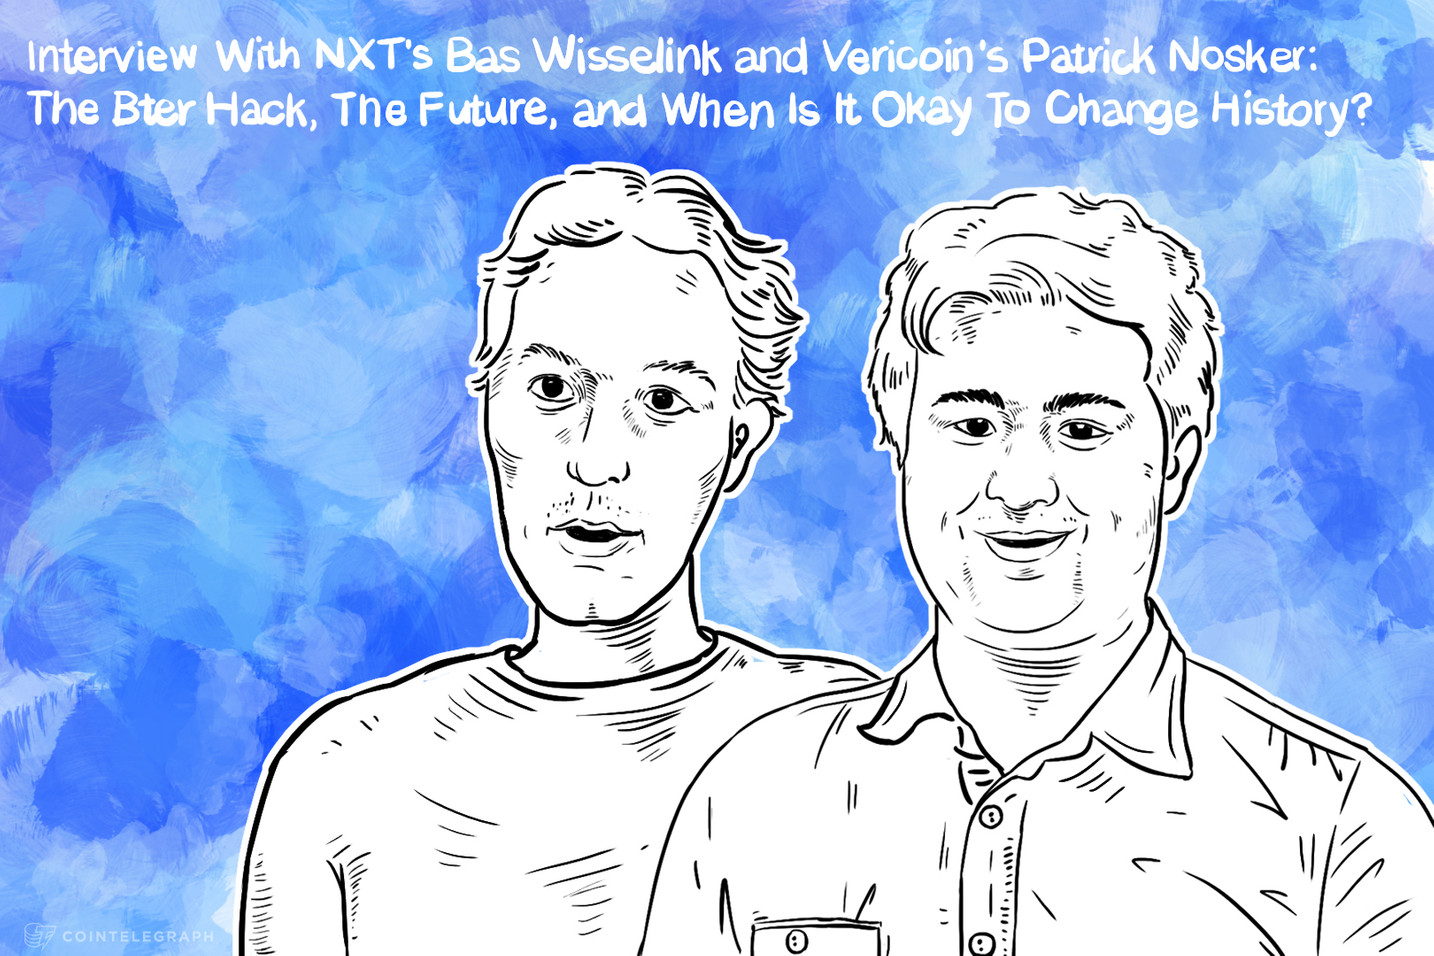 Interview With NXT's Bas Wisselink and Vericoin's Patrick Nosker: The Bter Hack, The Future and When Is It Okay To Change History?